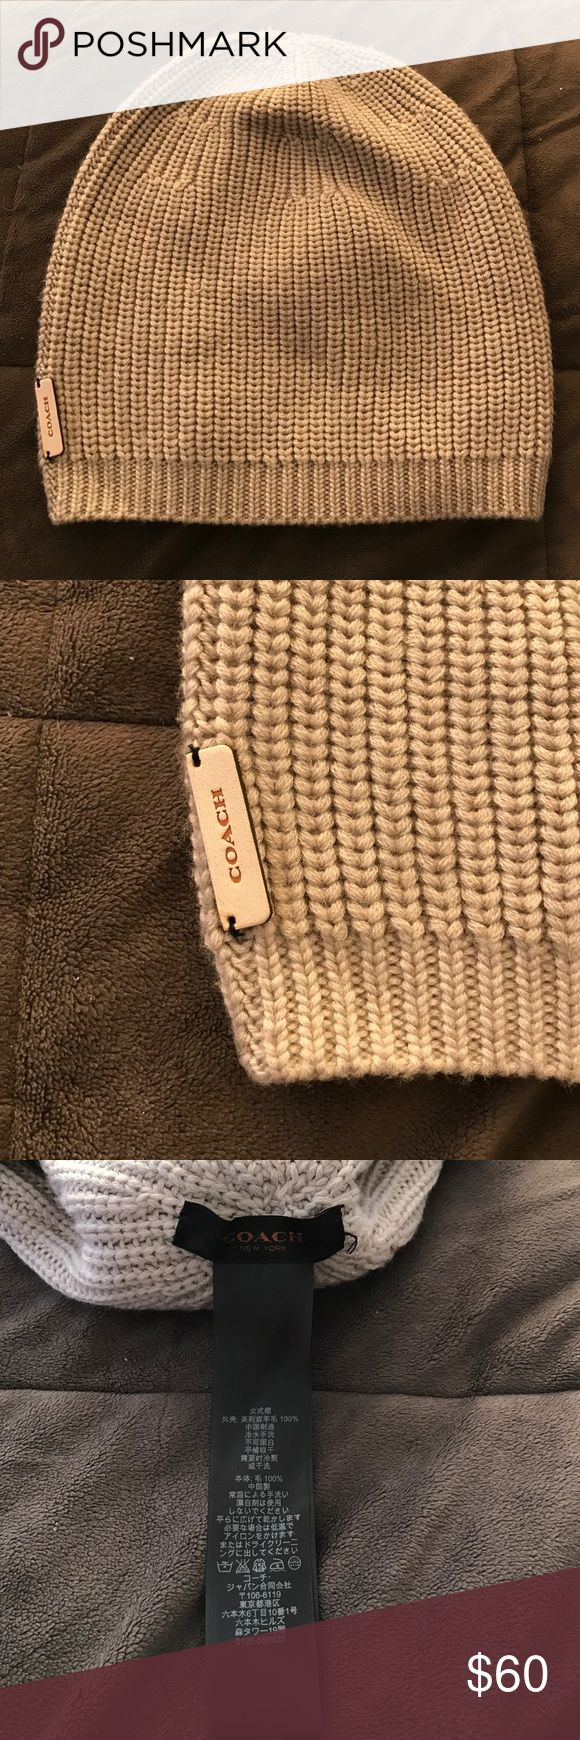 COACH Legacy Beanie AUTHENTIC COACH Legacy Beanie.  Grey knitting with leather patch.  NEW without tags.  Slouchy style is perfect year-round! Coach Accessories Hats